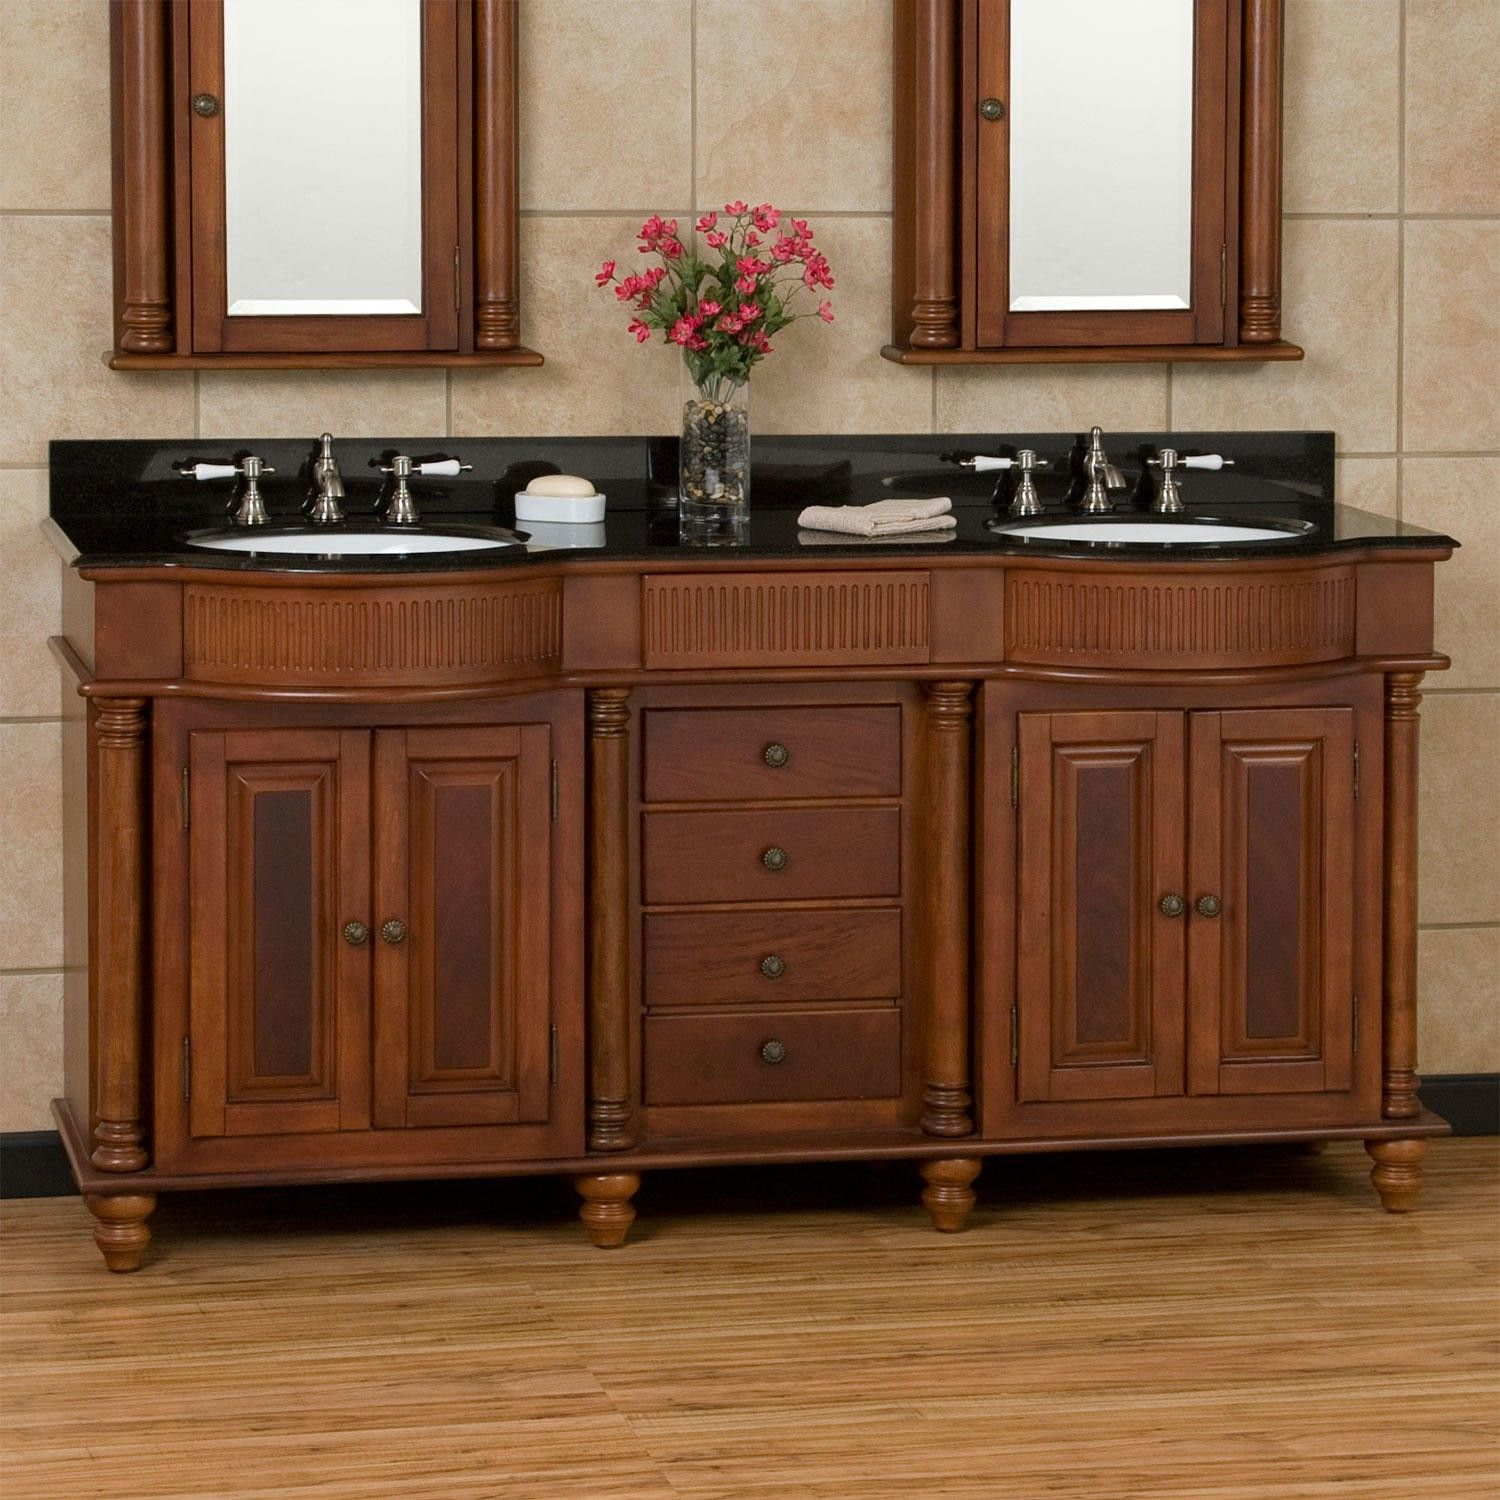 trellischicago modern vanities double to about what vanity know you need for bathroom